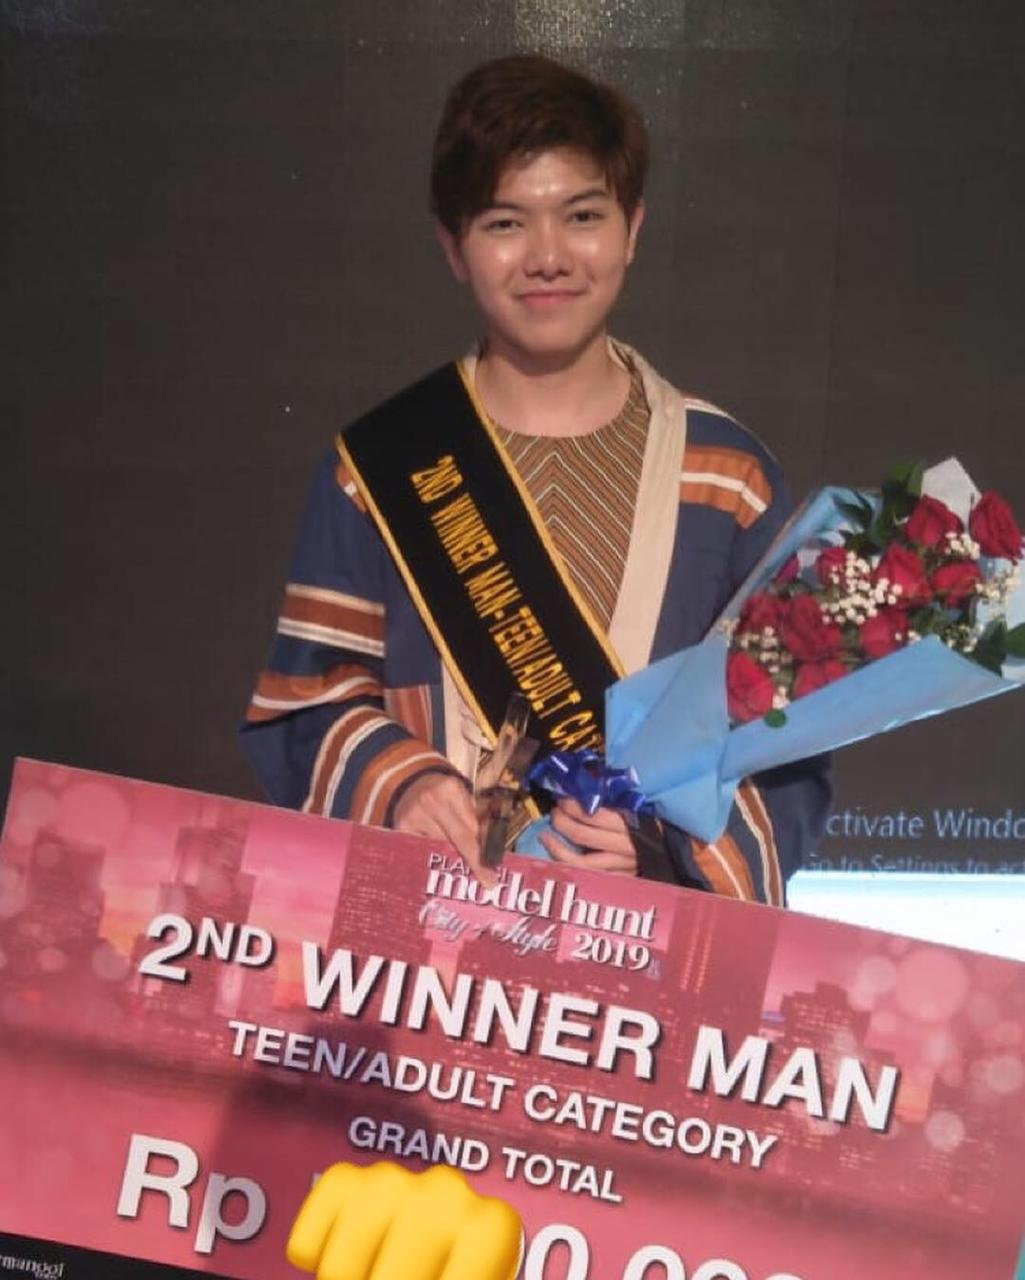 Andika Kelas 11 2nd Winner Man Model Hunt Teen/Adult Category